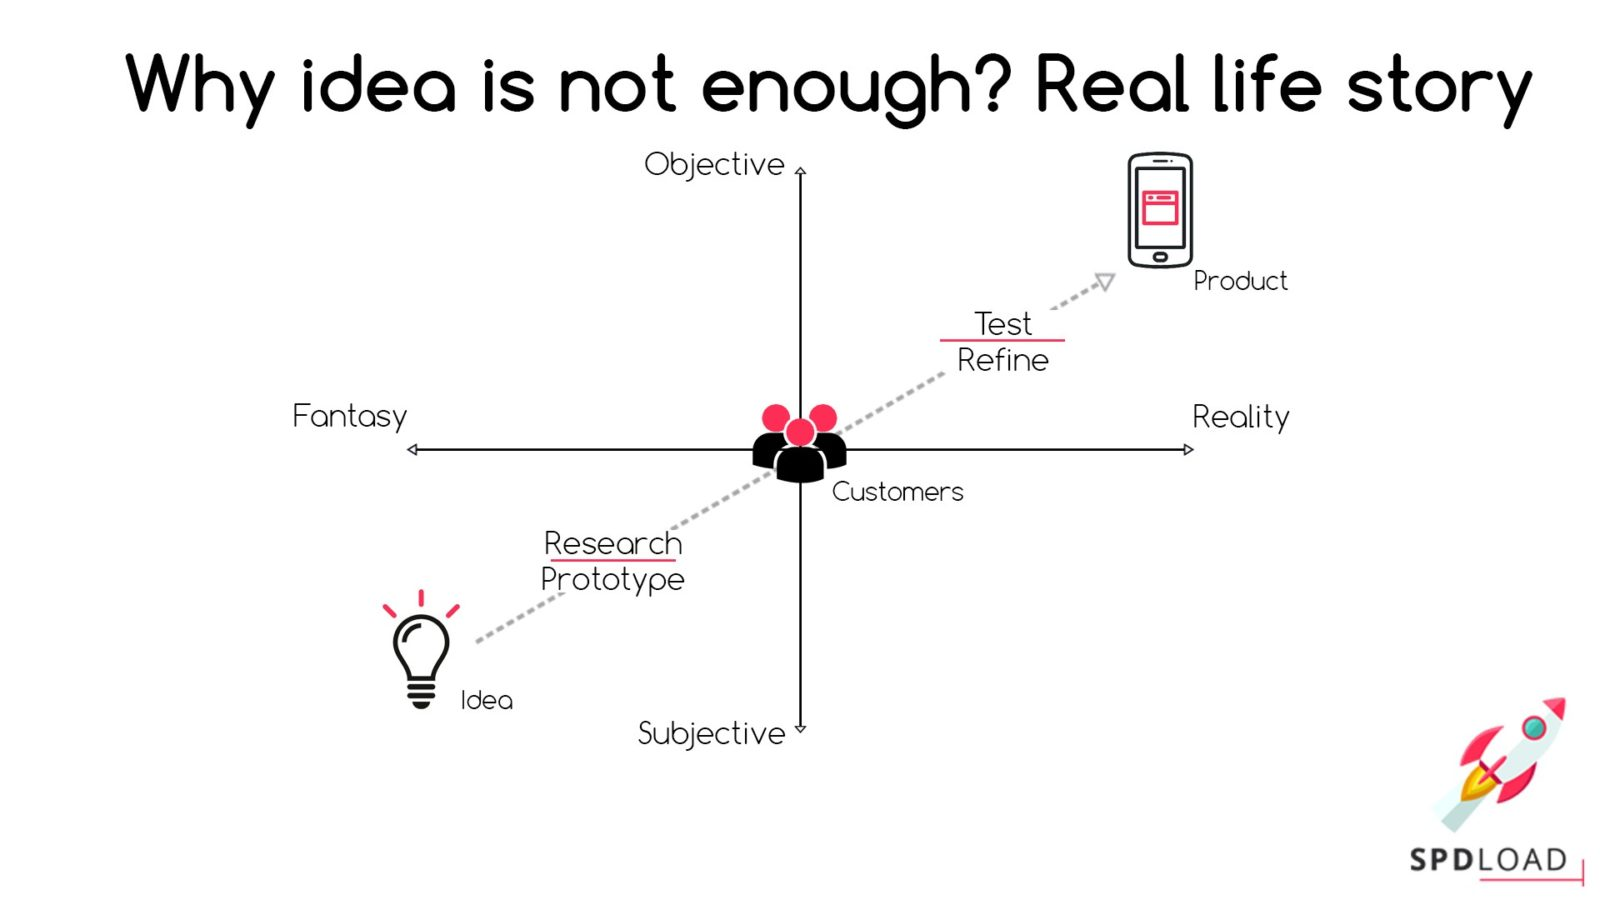 Why idea is not enough